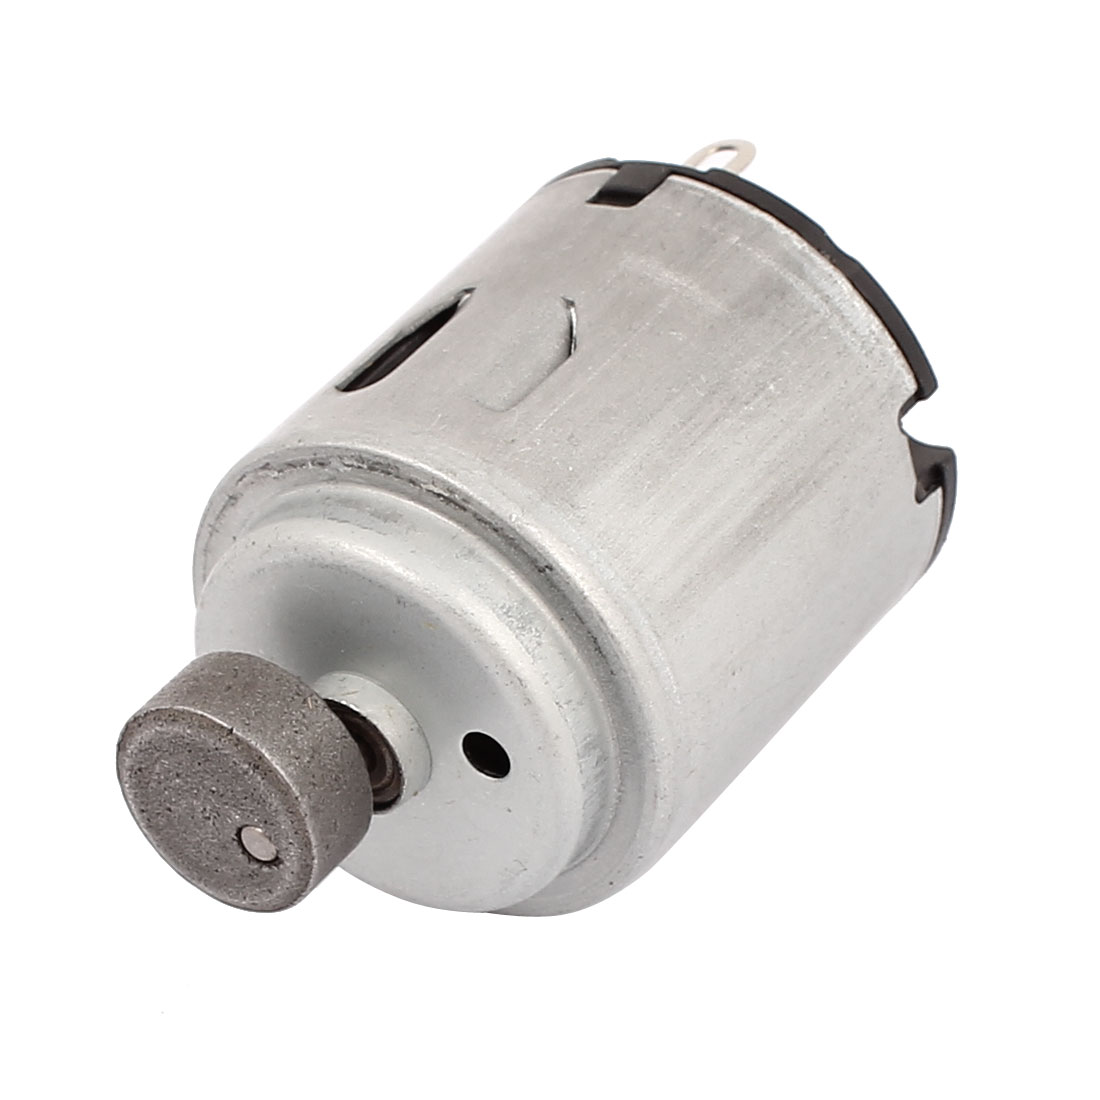 3-12V High Speed Micro Vibration DC Motor Replacement R260 for Massager